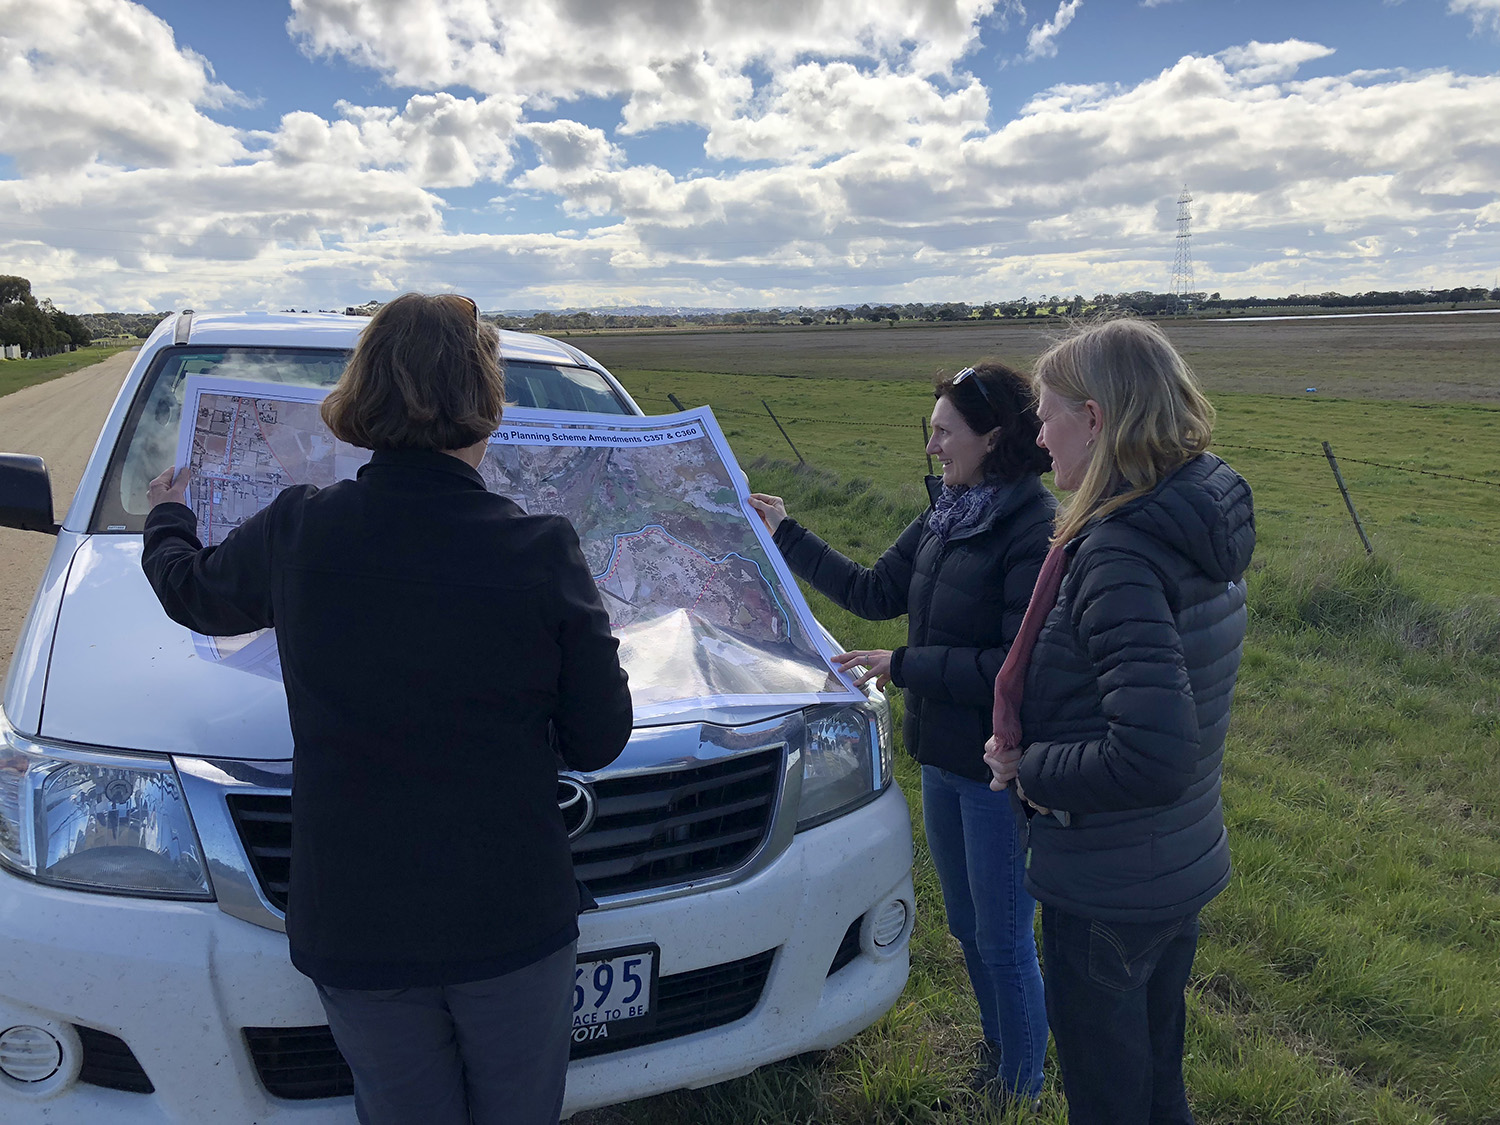 Sharing plans for the Lower Barwon floodplain from left Donna Smithyman City of Greater Geelong, Jaclyne Scally, RMCG and Jenny Emeny, Warrnambool City Council (3 Sep 2018). Photo credit: Trent Wallis